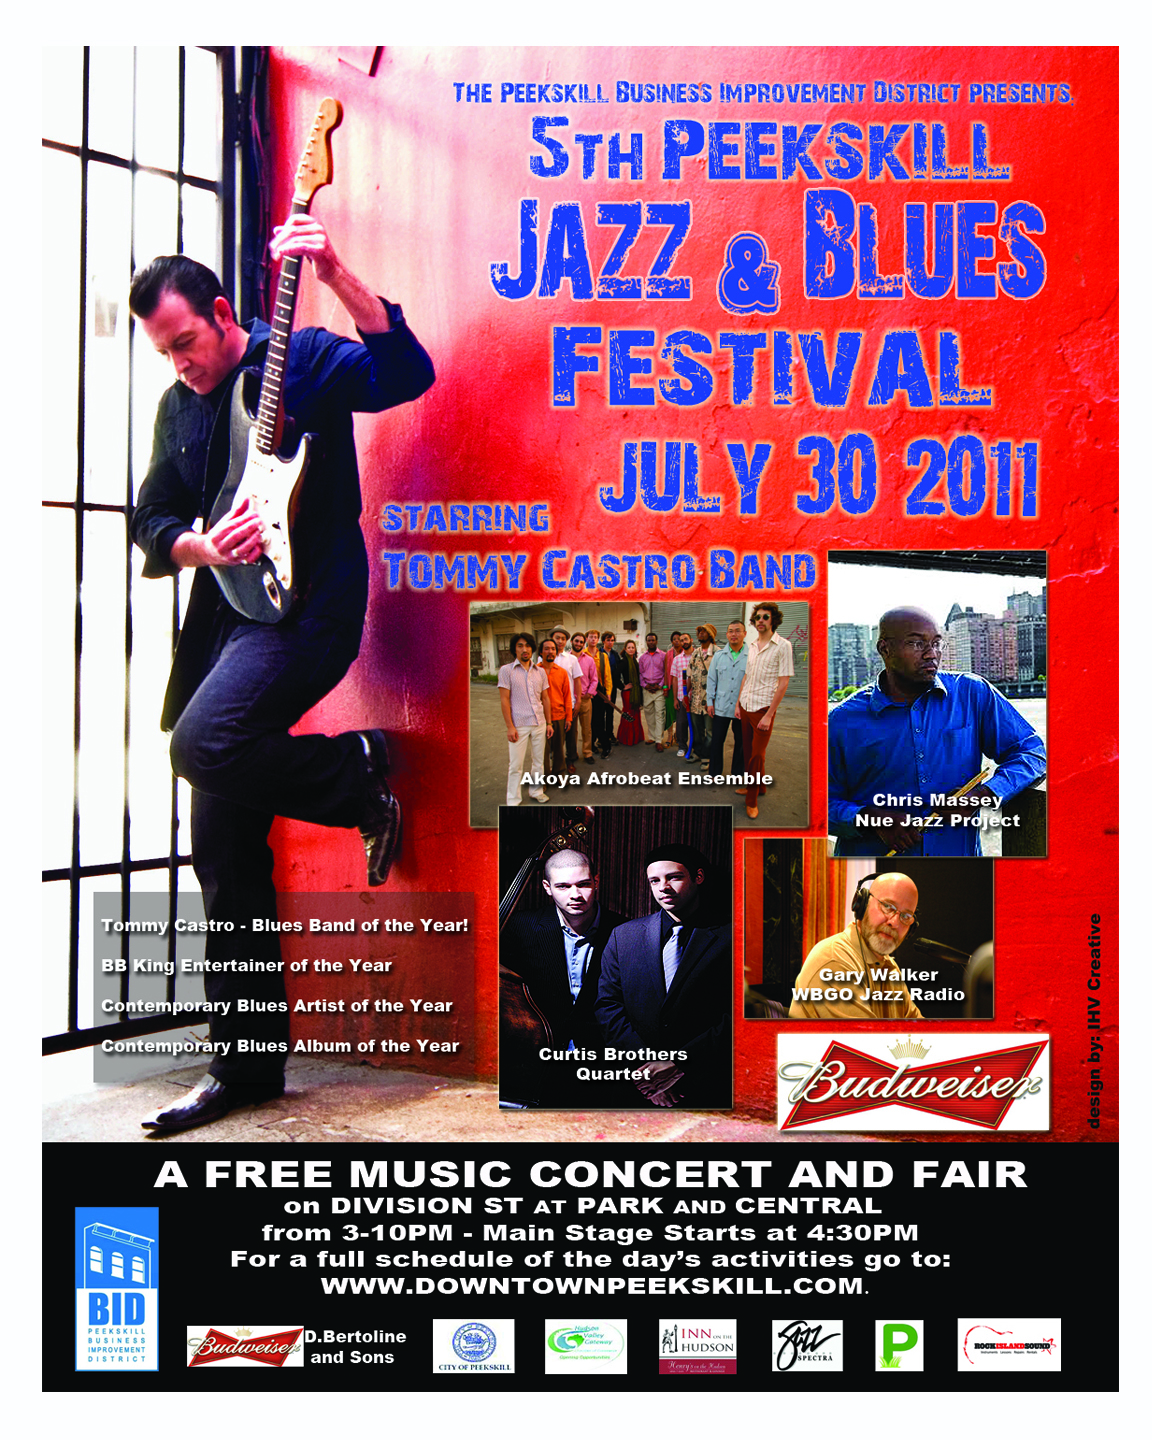 Peekskill Jazz & Blues Festival 2011